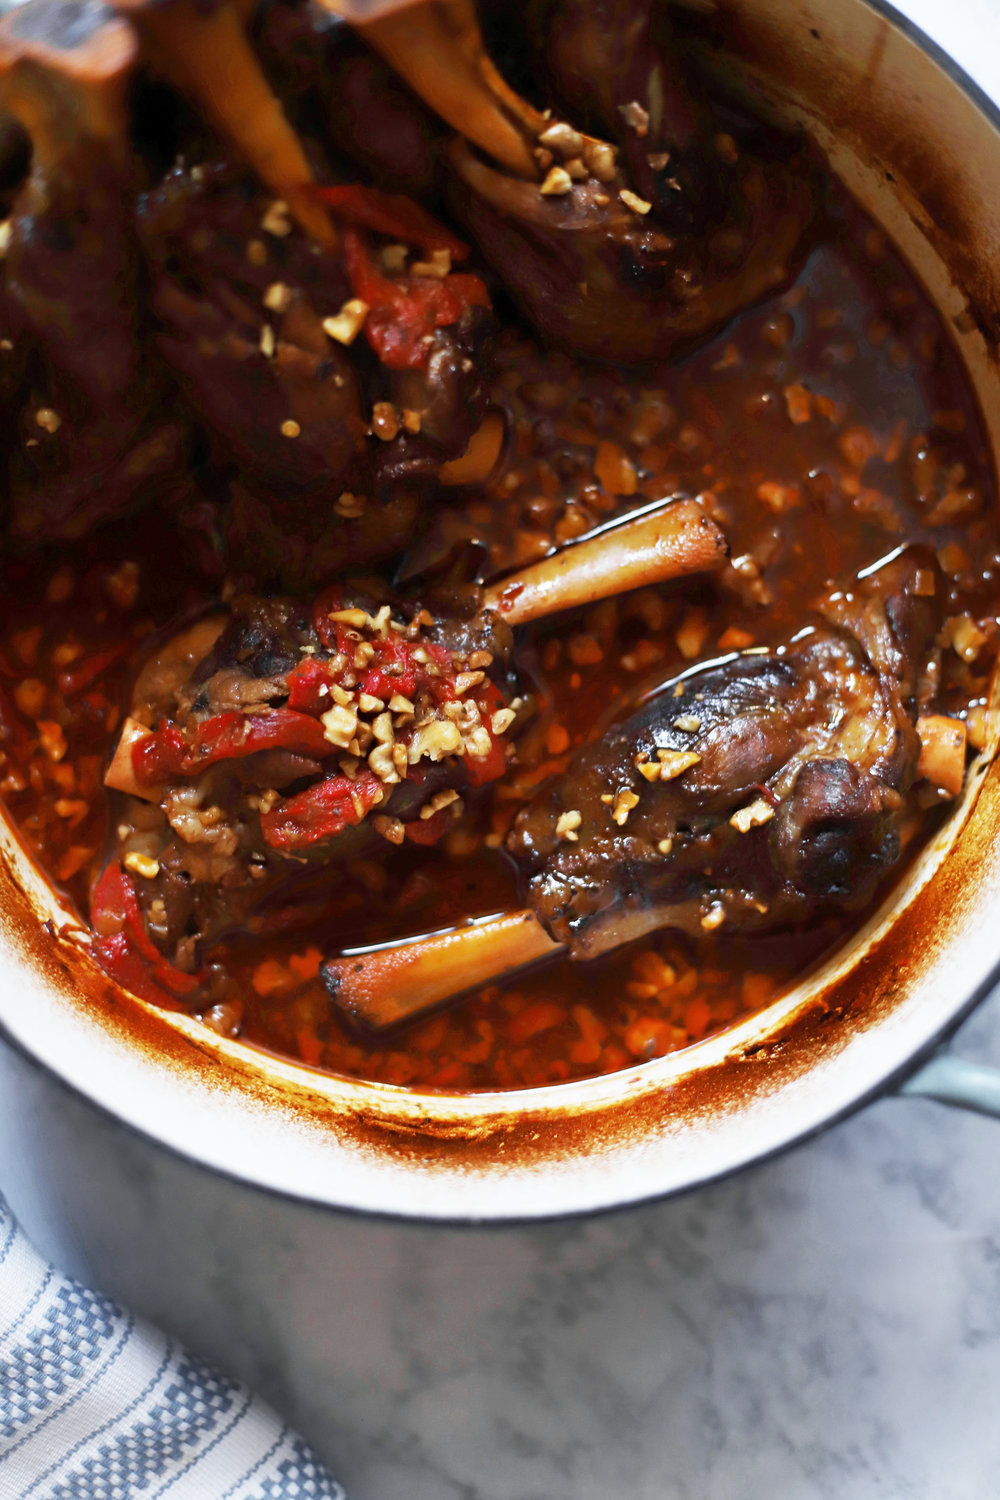 muhammara-inspired lamb shanks